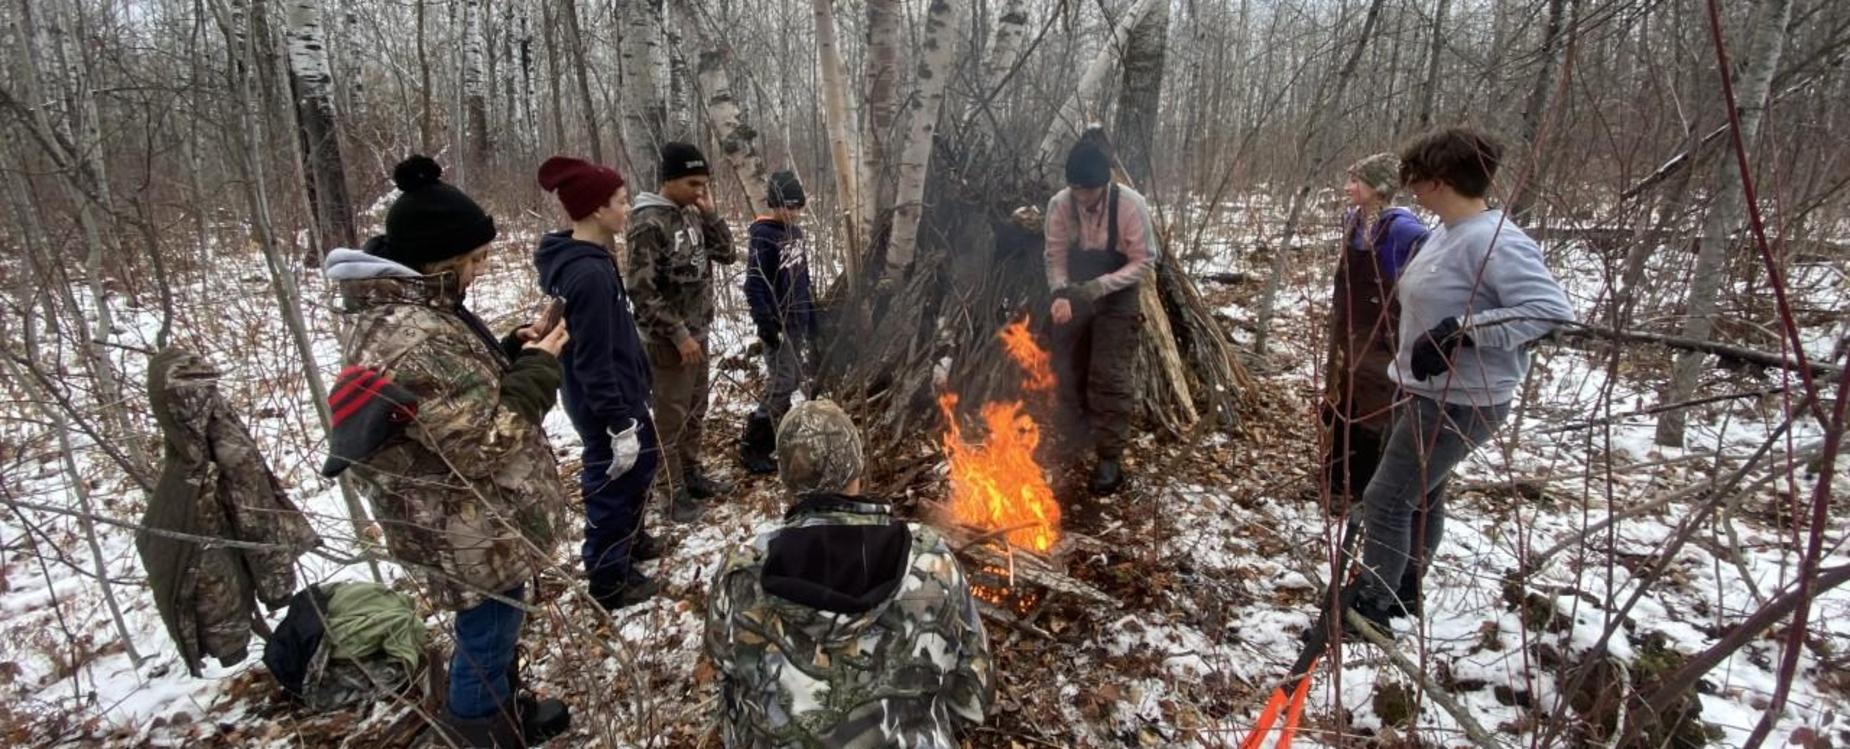 Students in DRCSS Wilderness Class